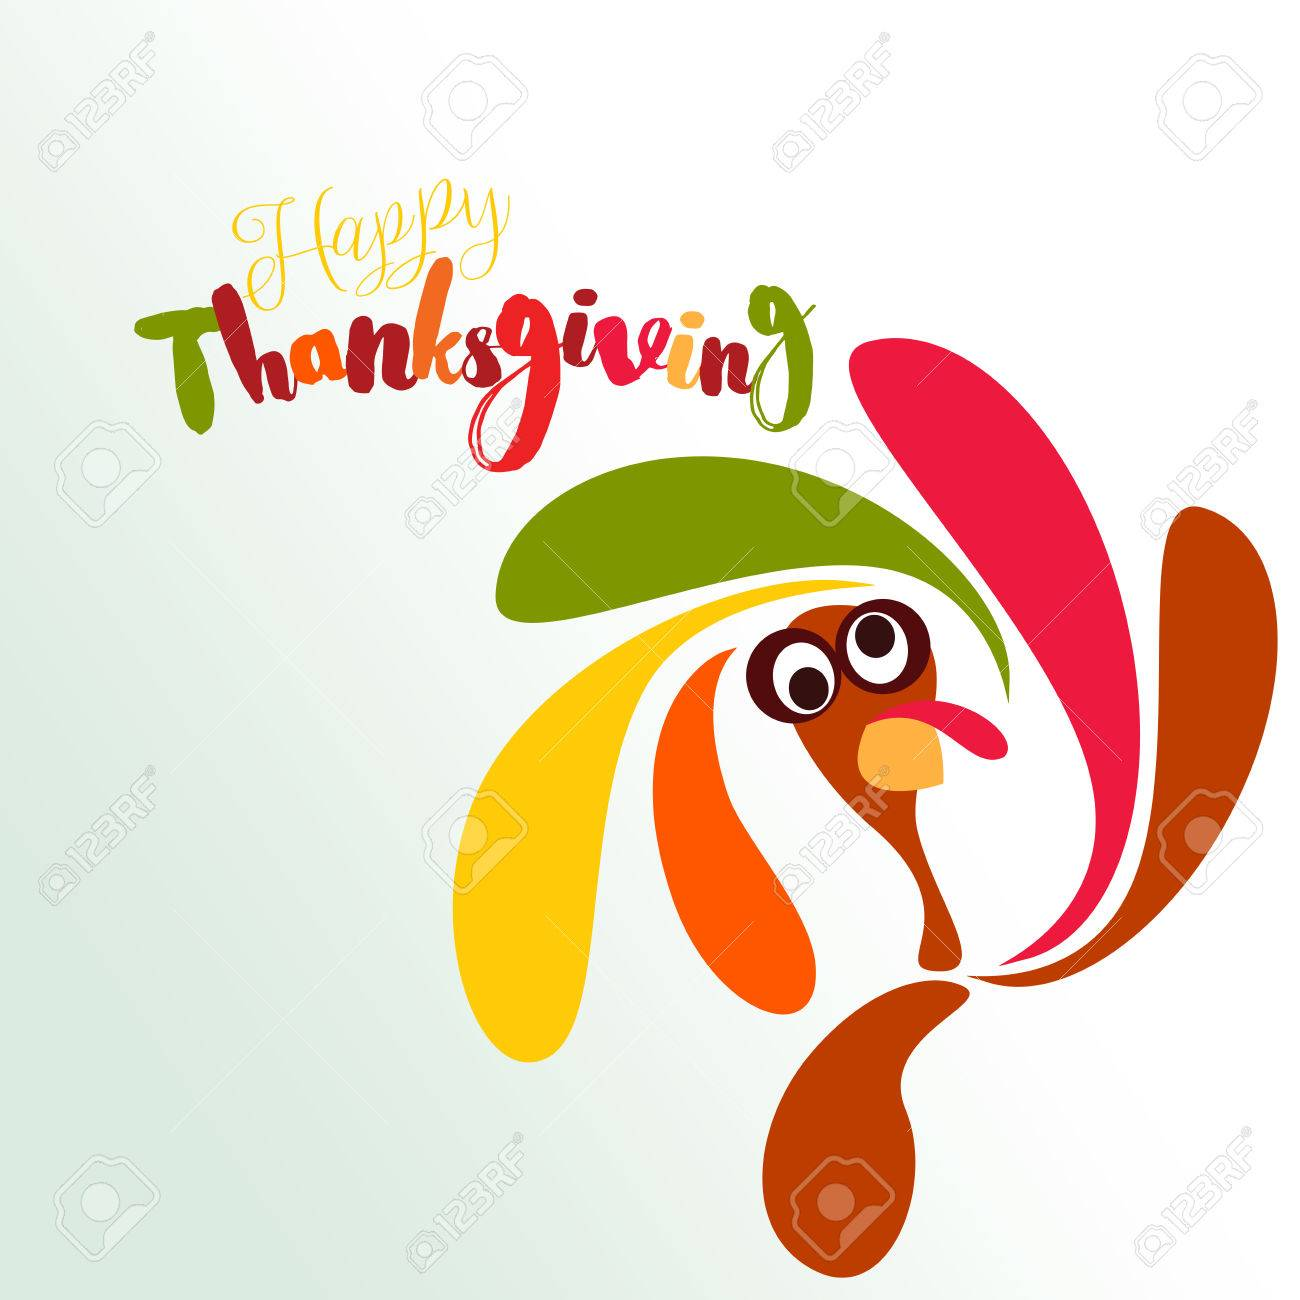 Happy thanksgiving greeting card with a funny turkey stock photo happy thanksgiving greeting card with a funny turkey stock photo 81276758 m4hsunfo